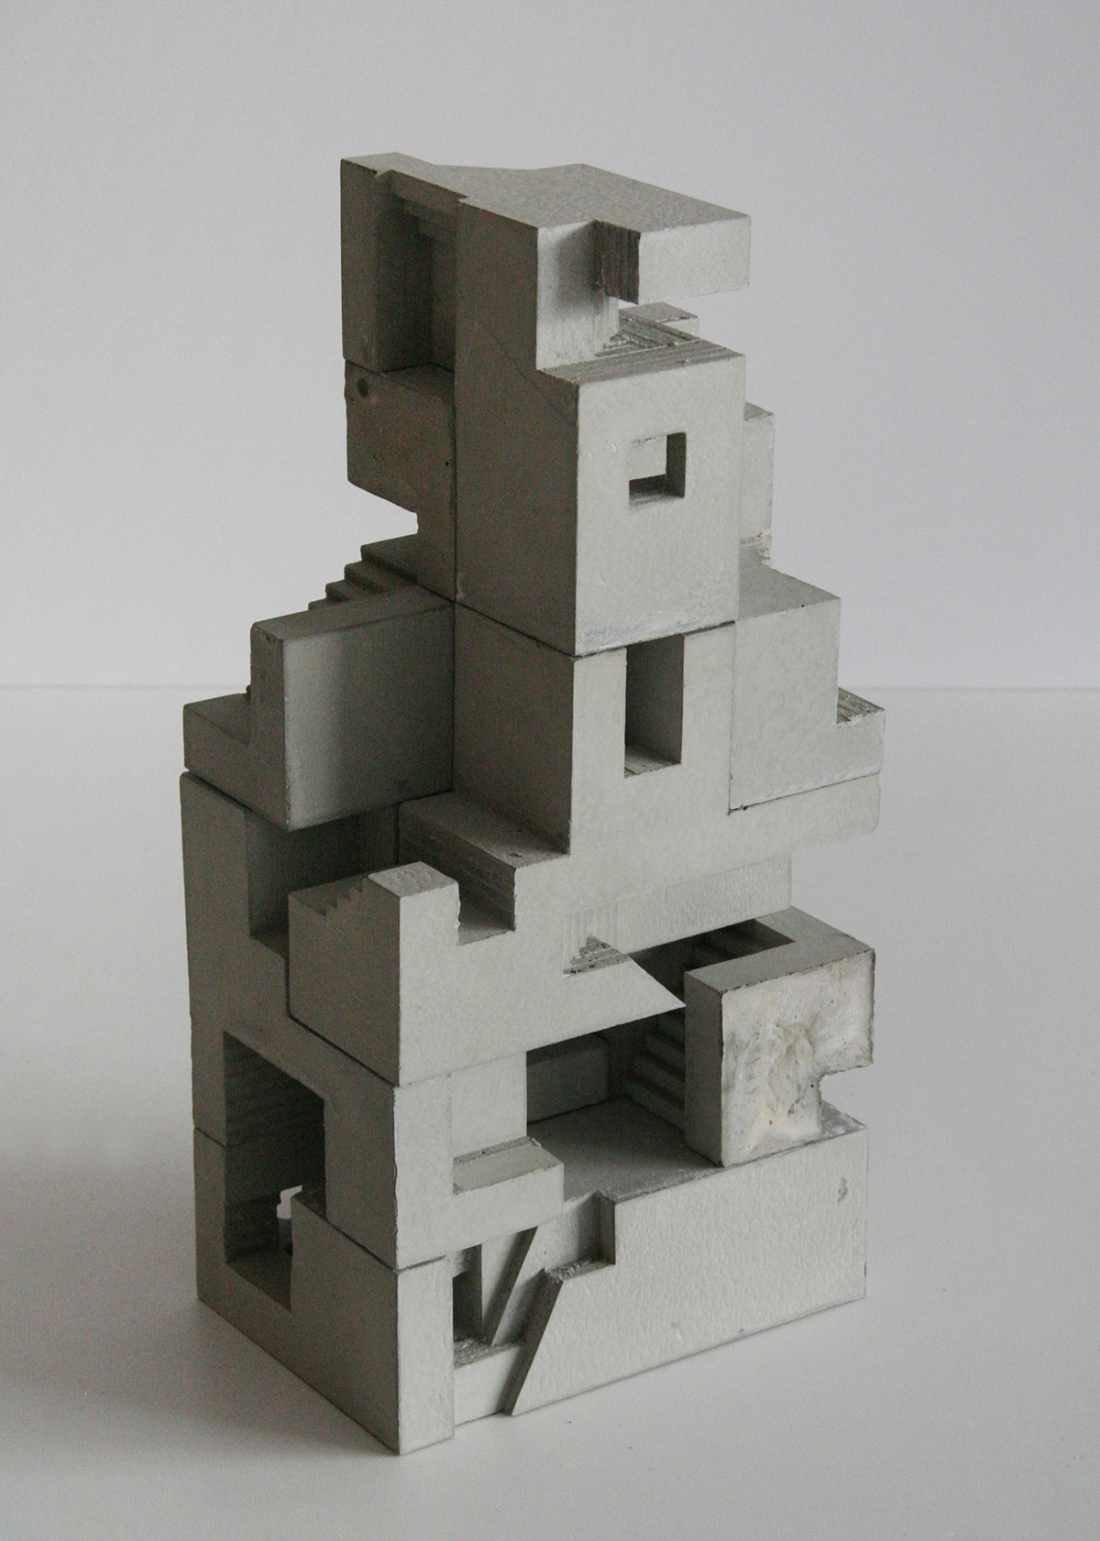 Miniature concrete sculptures of Brutalist structures can be used like grown-up Lego